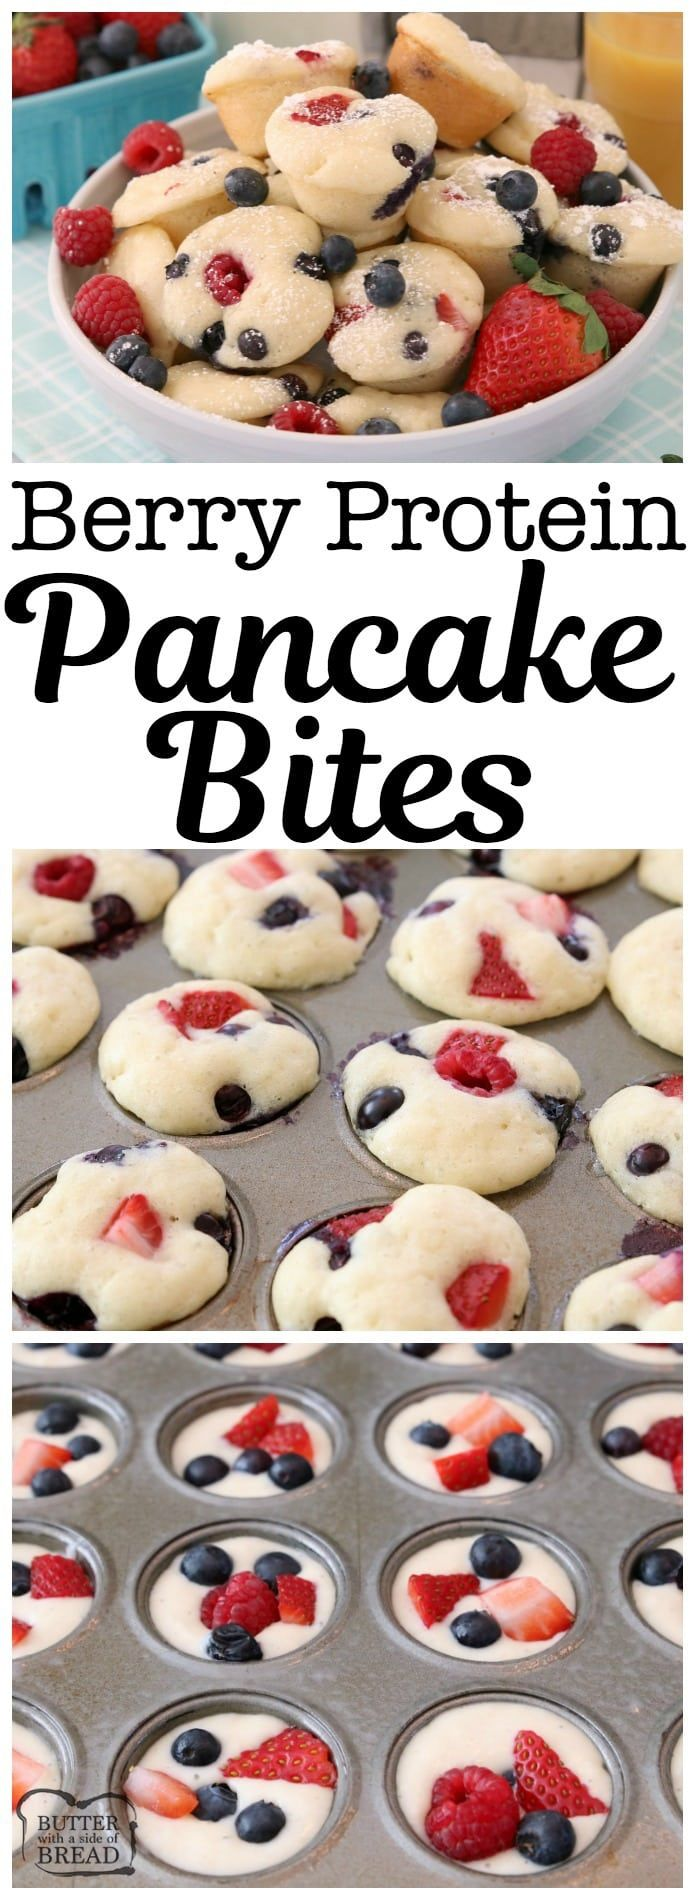 Berry Protein Pancake Bites made easy by baking protein pancake batter in the oven with fresh blueberries, raspberries and strawberries. Dust with powdered sugar or drizzle with syrup for a delicious, satisfying breakfast. #Pancakes #breakfast #dinner #berries #protein Butter With A Side of Bread